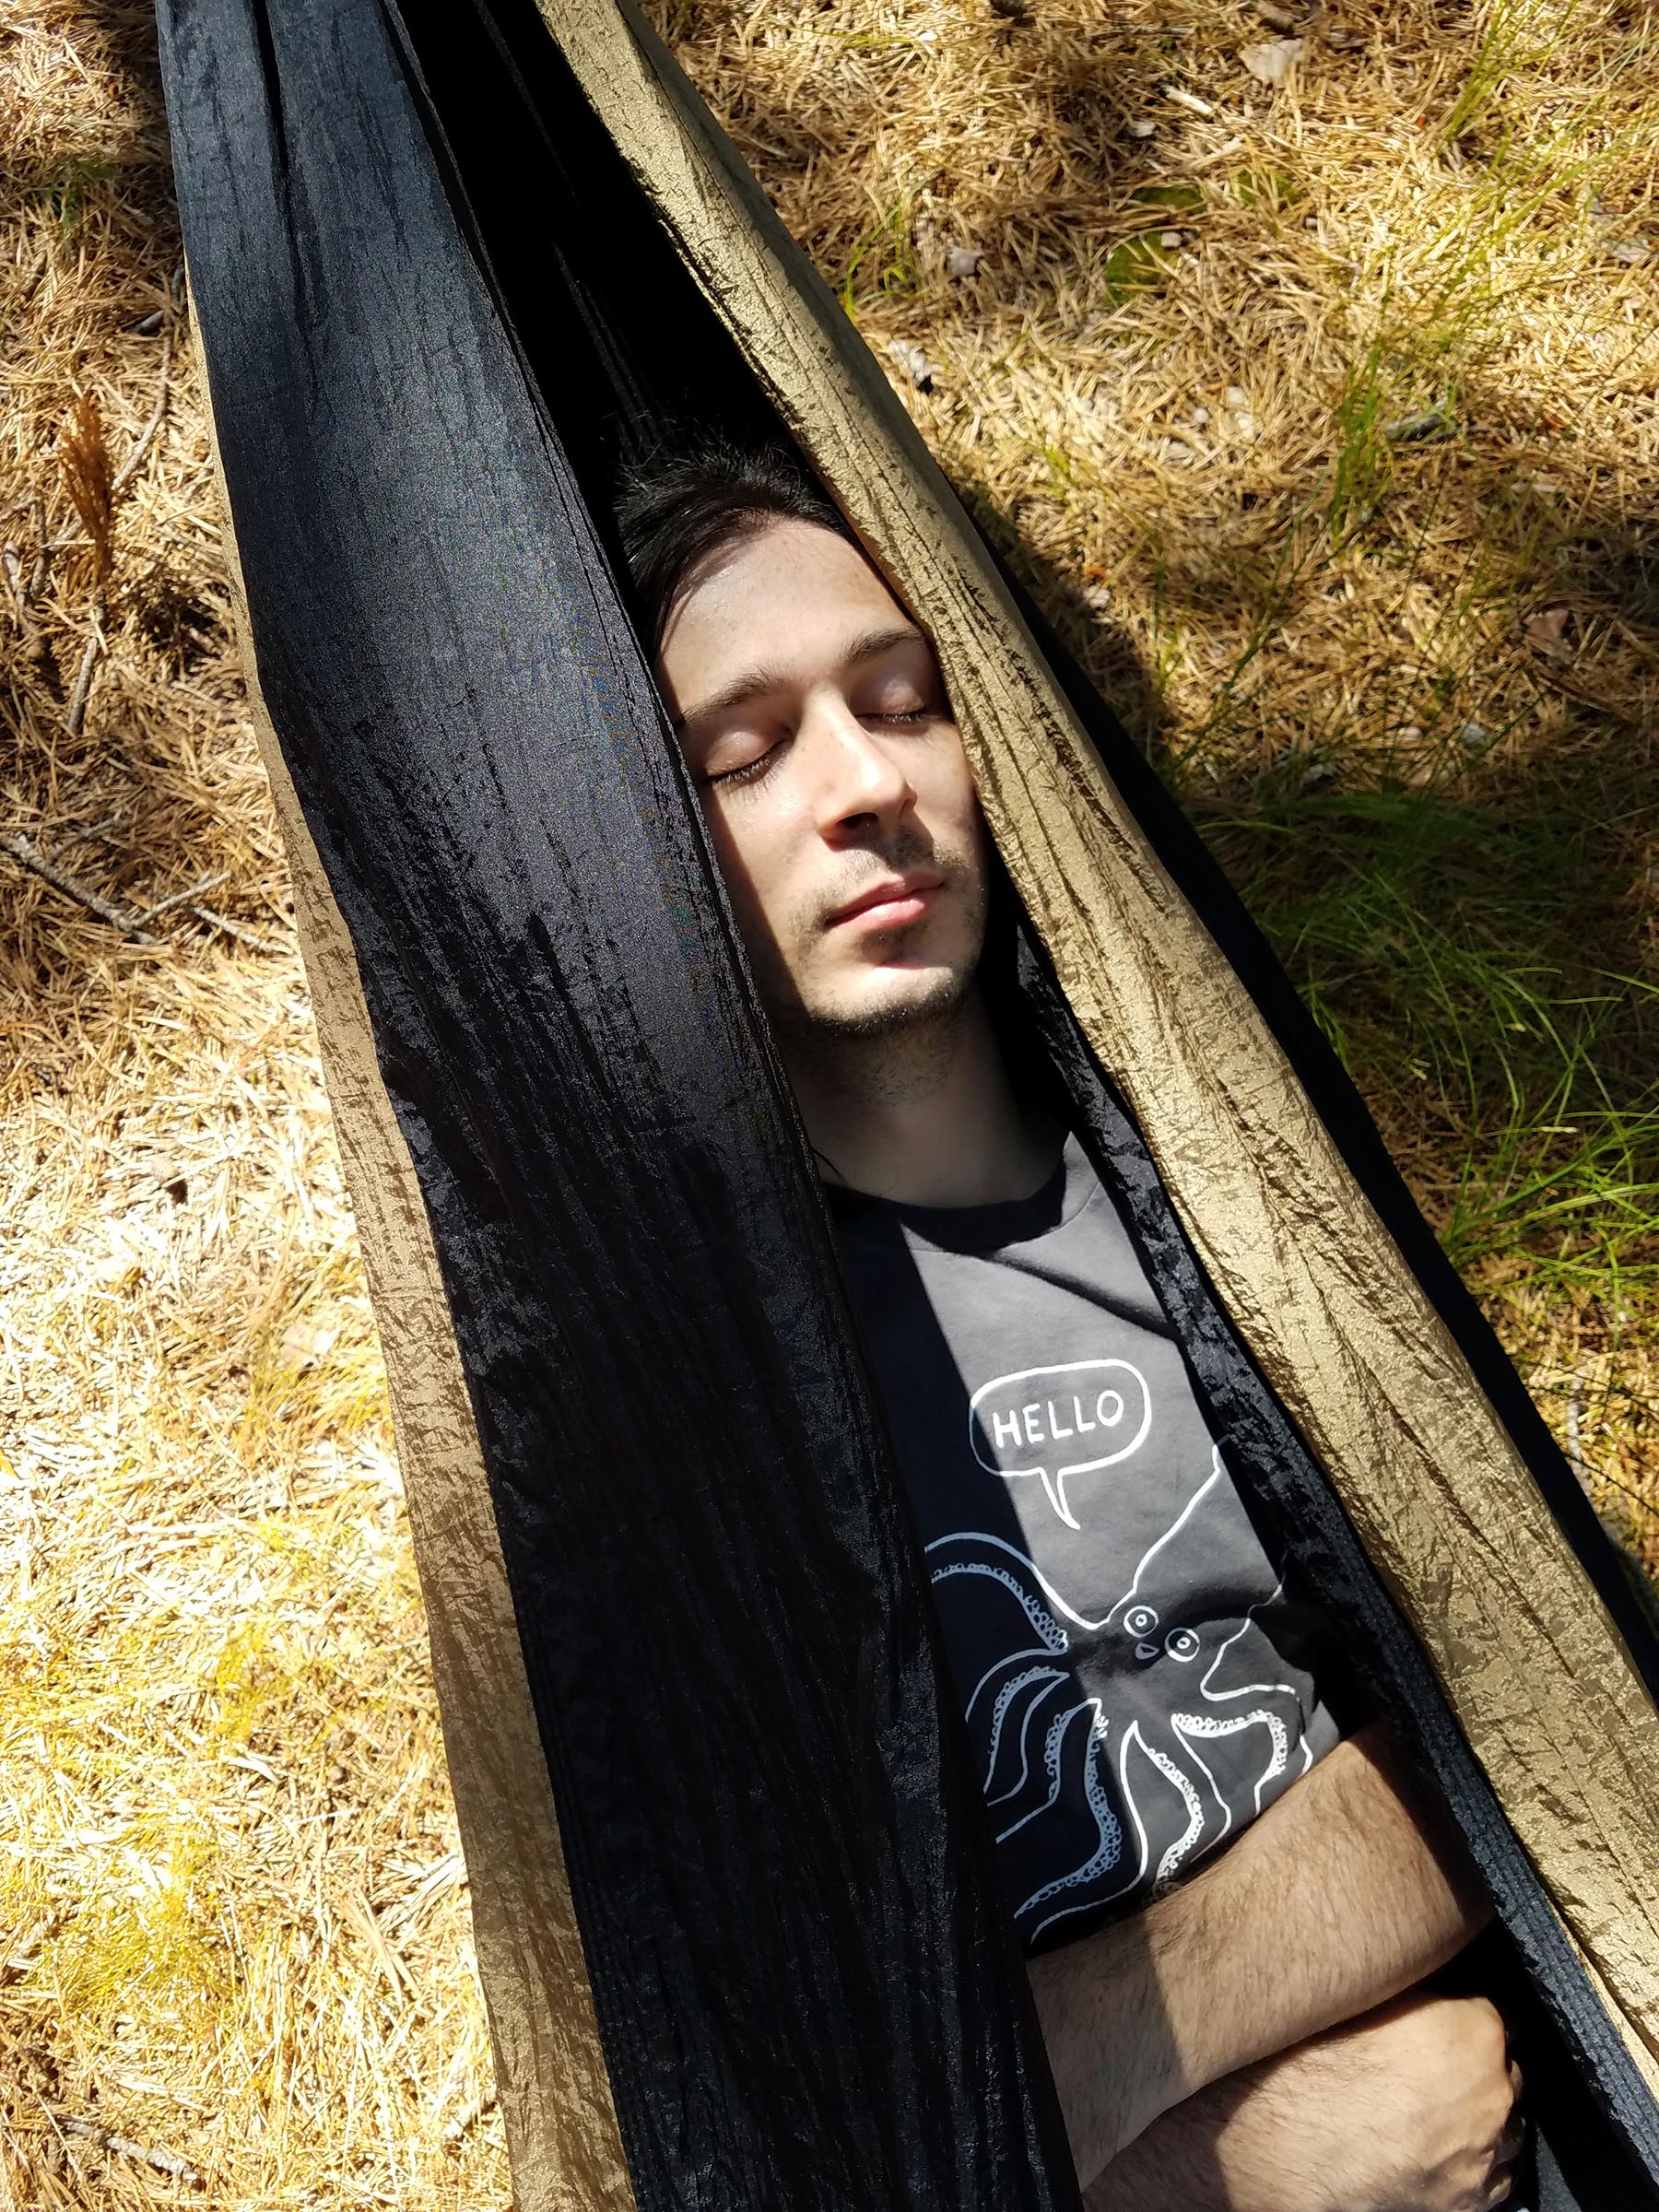 A person with their eyes closed, taking an afternoon nap in a hammock.